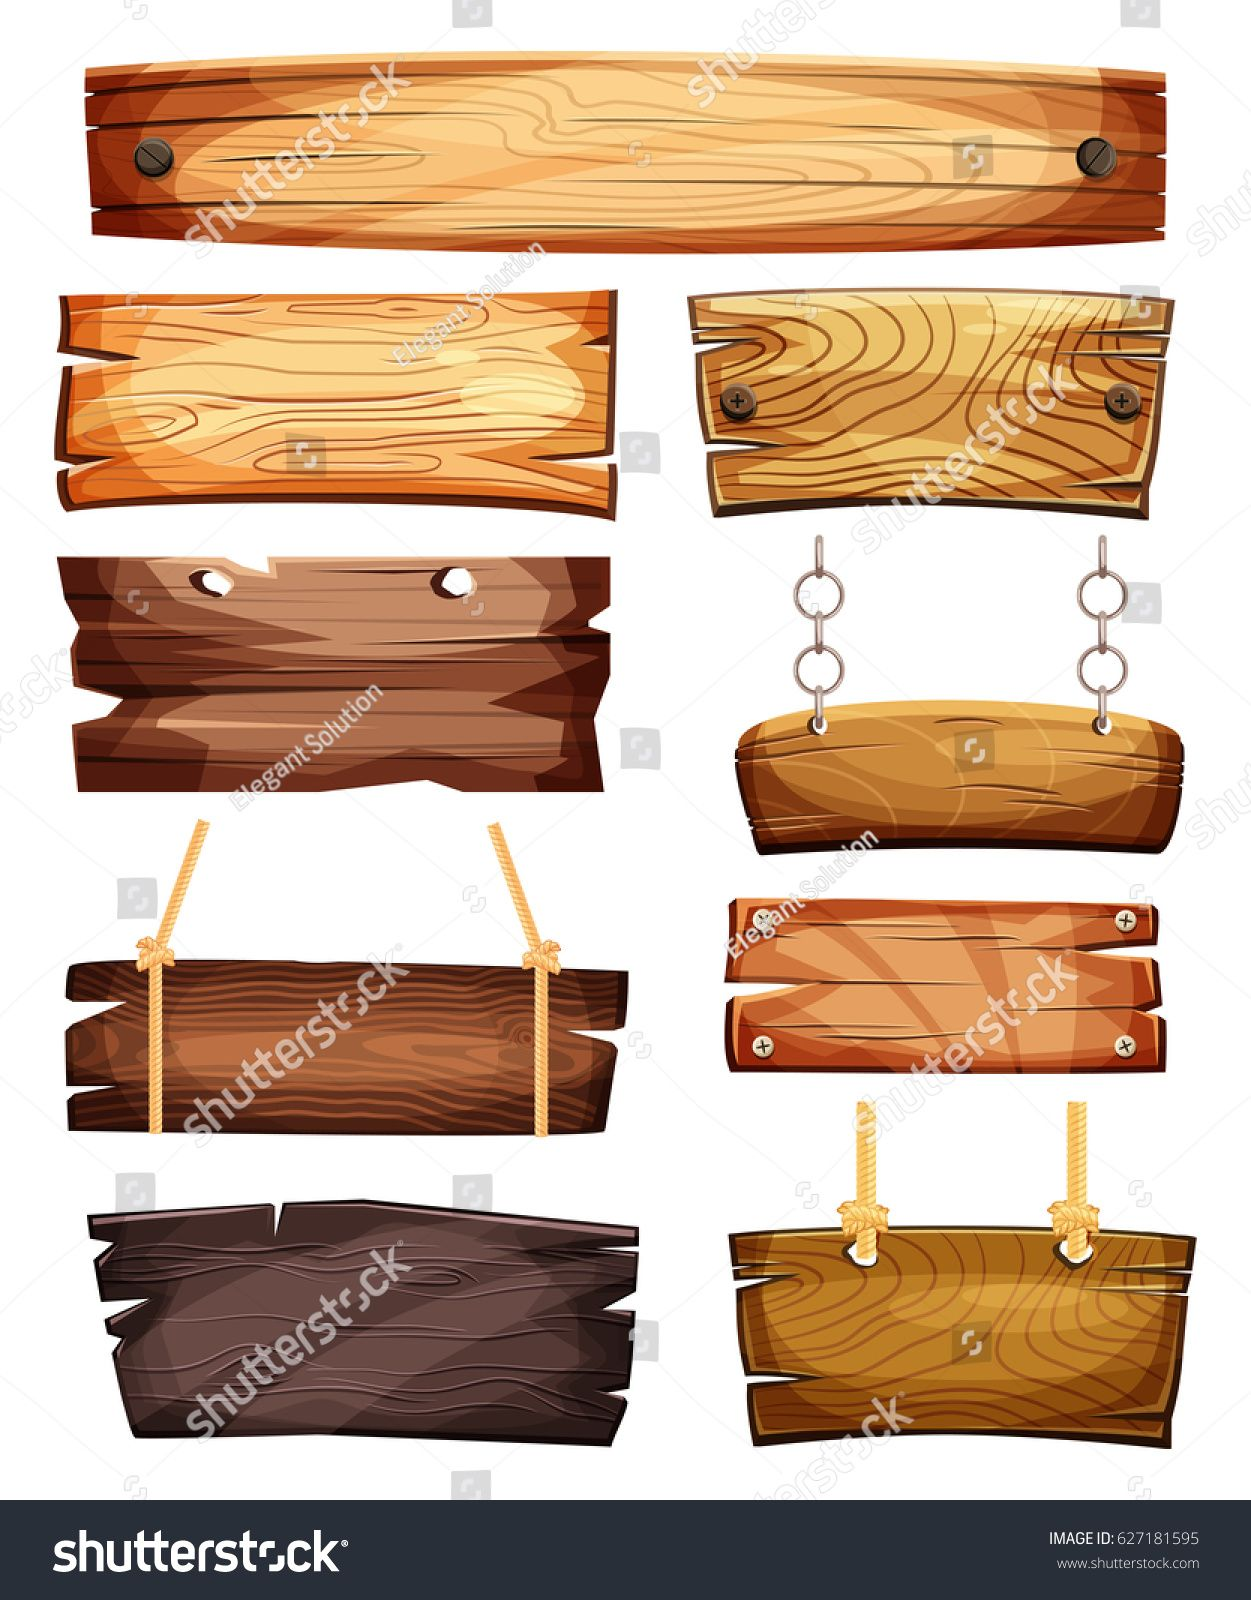 Old West Empty Signboards Or Wood Plank Blank Wooden Boards With Nails For Banners Or Messages Hanging On Chains Or R Wooden Signs Name Plate Design Signboard